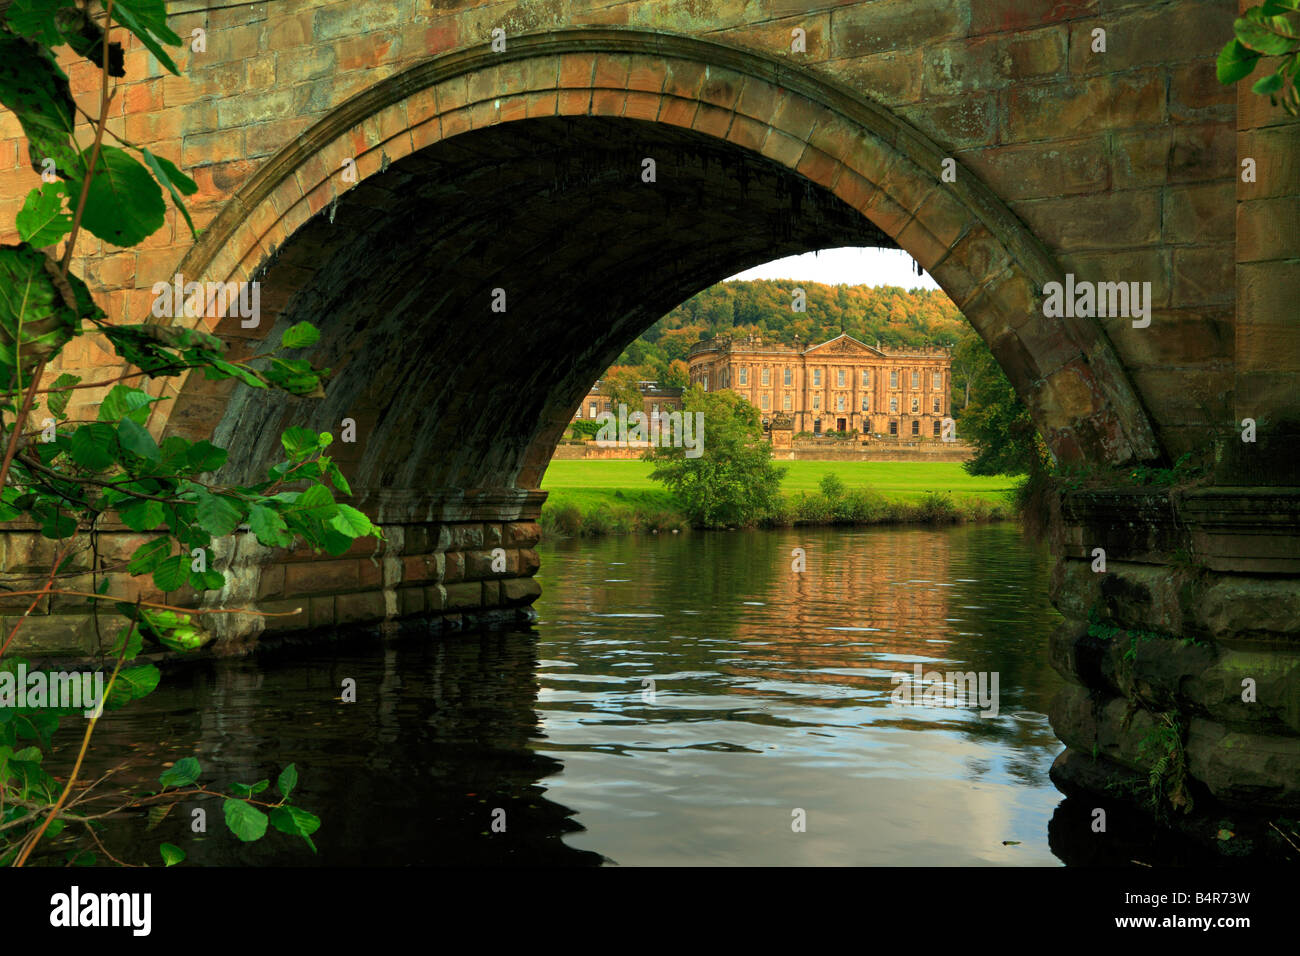 River Derwent and Chatsworth House viewed through an arch of the bridge Derbyshire England UK - Stock Image